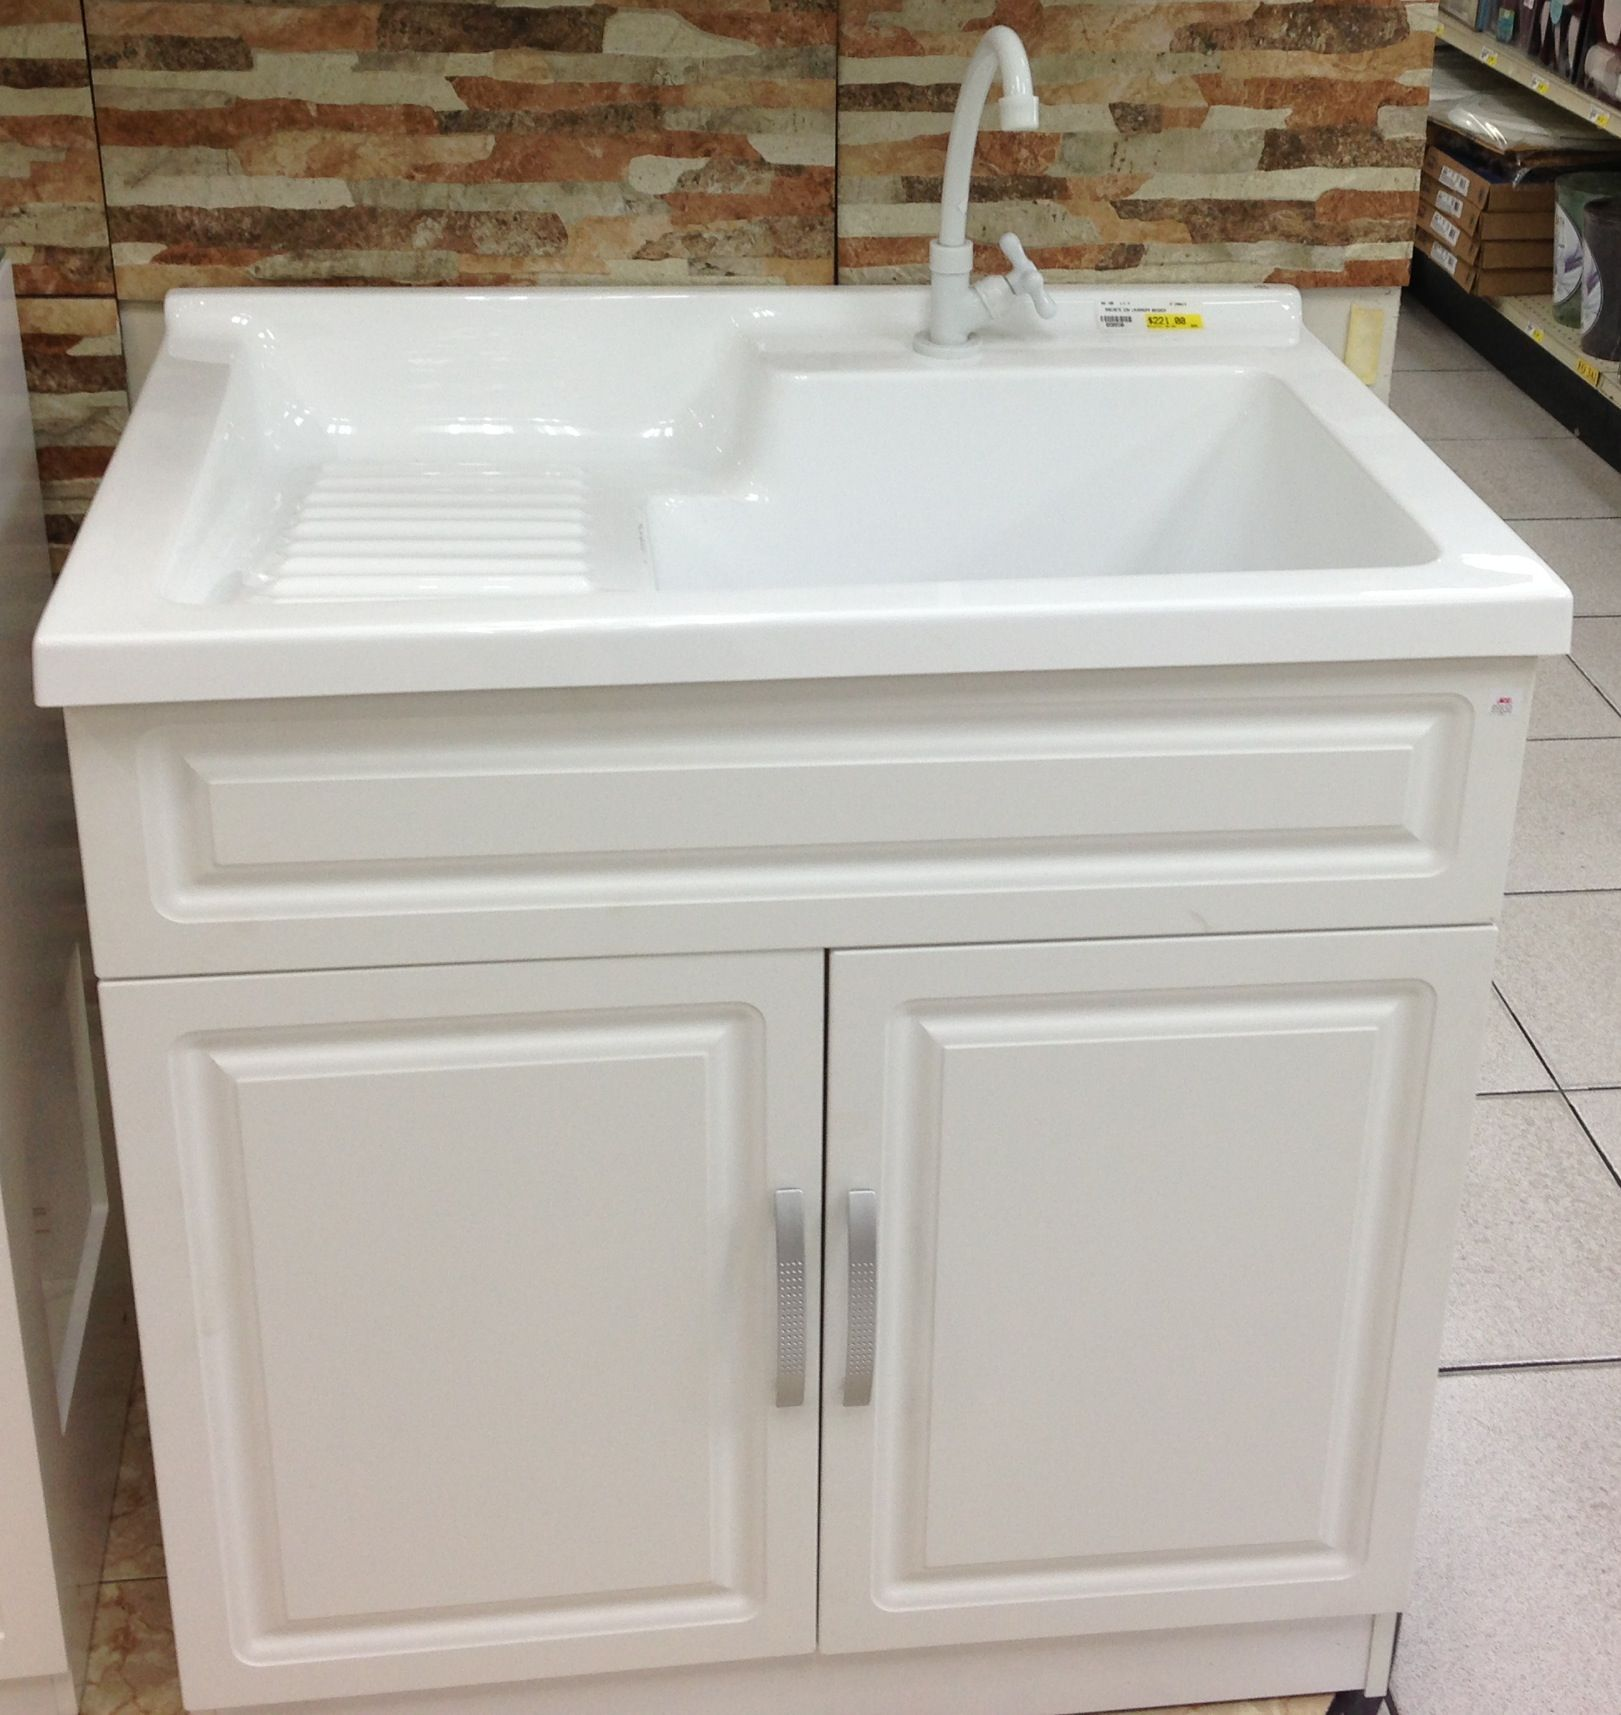 Functional Laundry Sink. Corstone Self Rimming at Lowes for $145 : lowes laundry sink cabinet - Cheerinfomania.Com